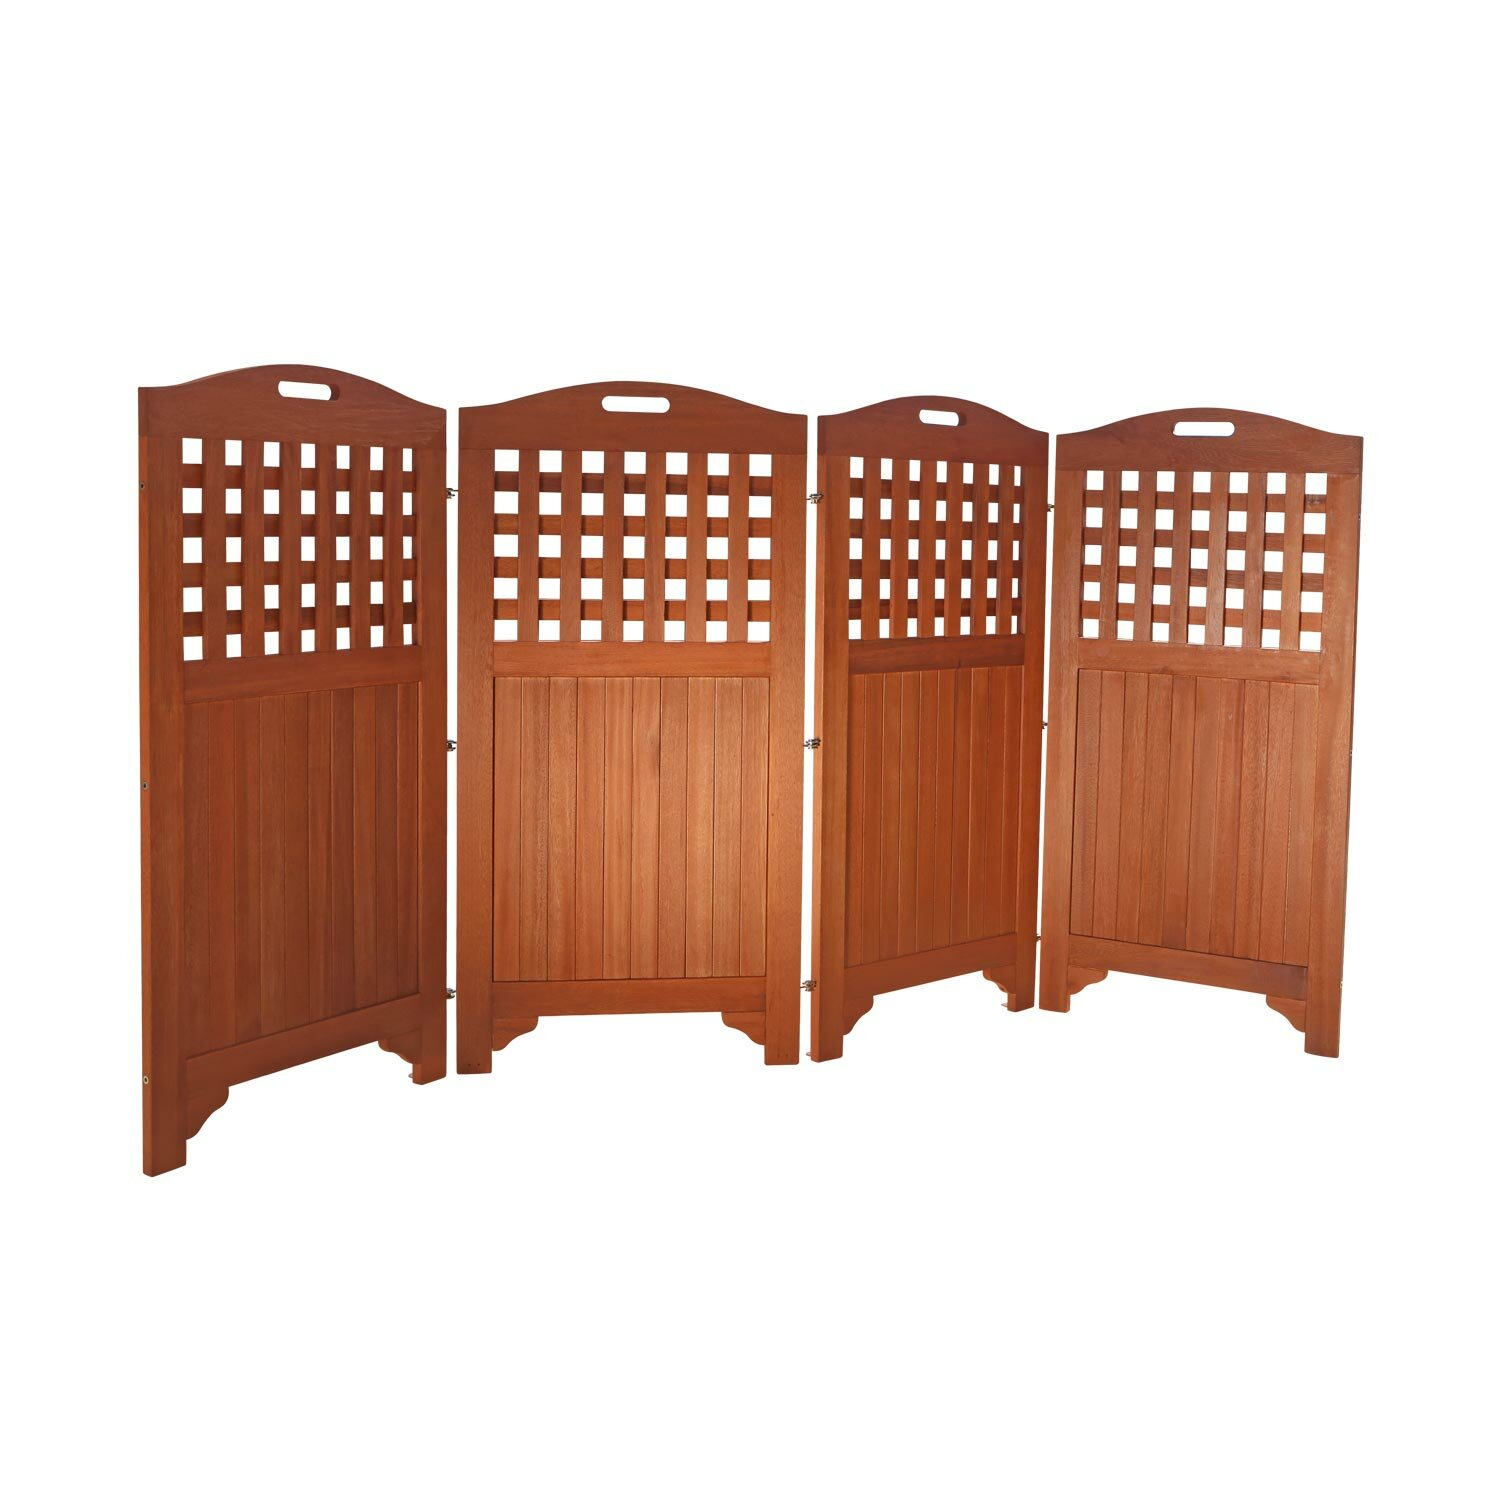 Vifah outdoor wood privacy screen reviews wayfair for Outdoor wood privacy screen